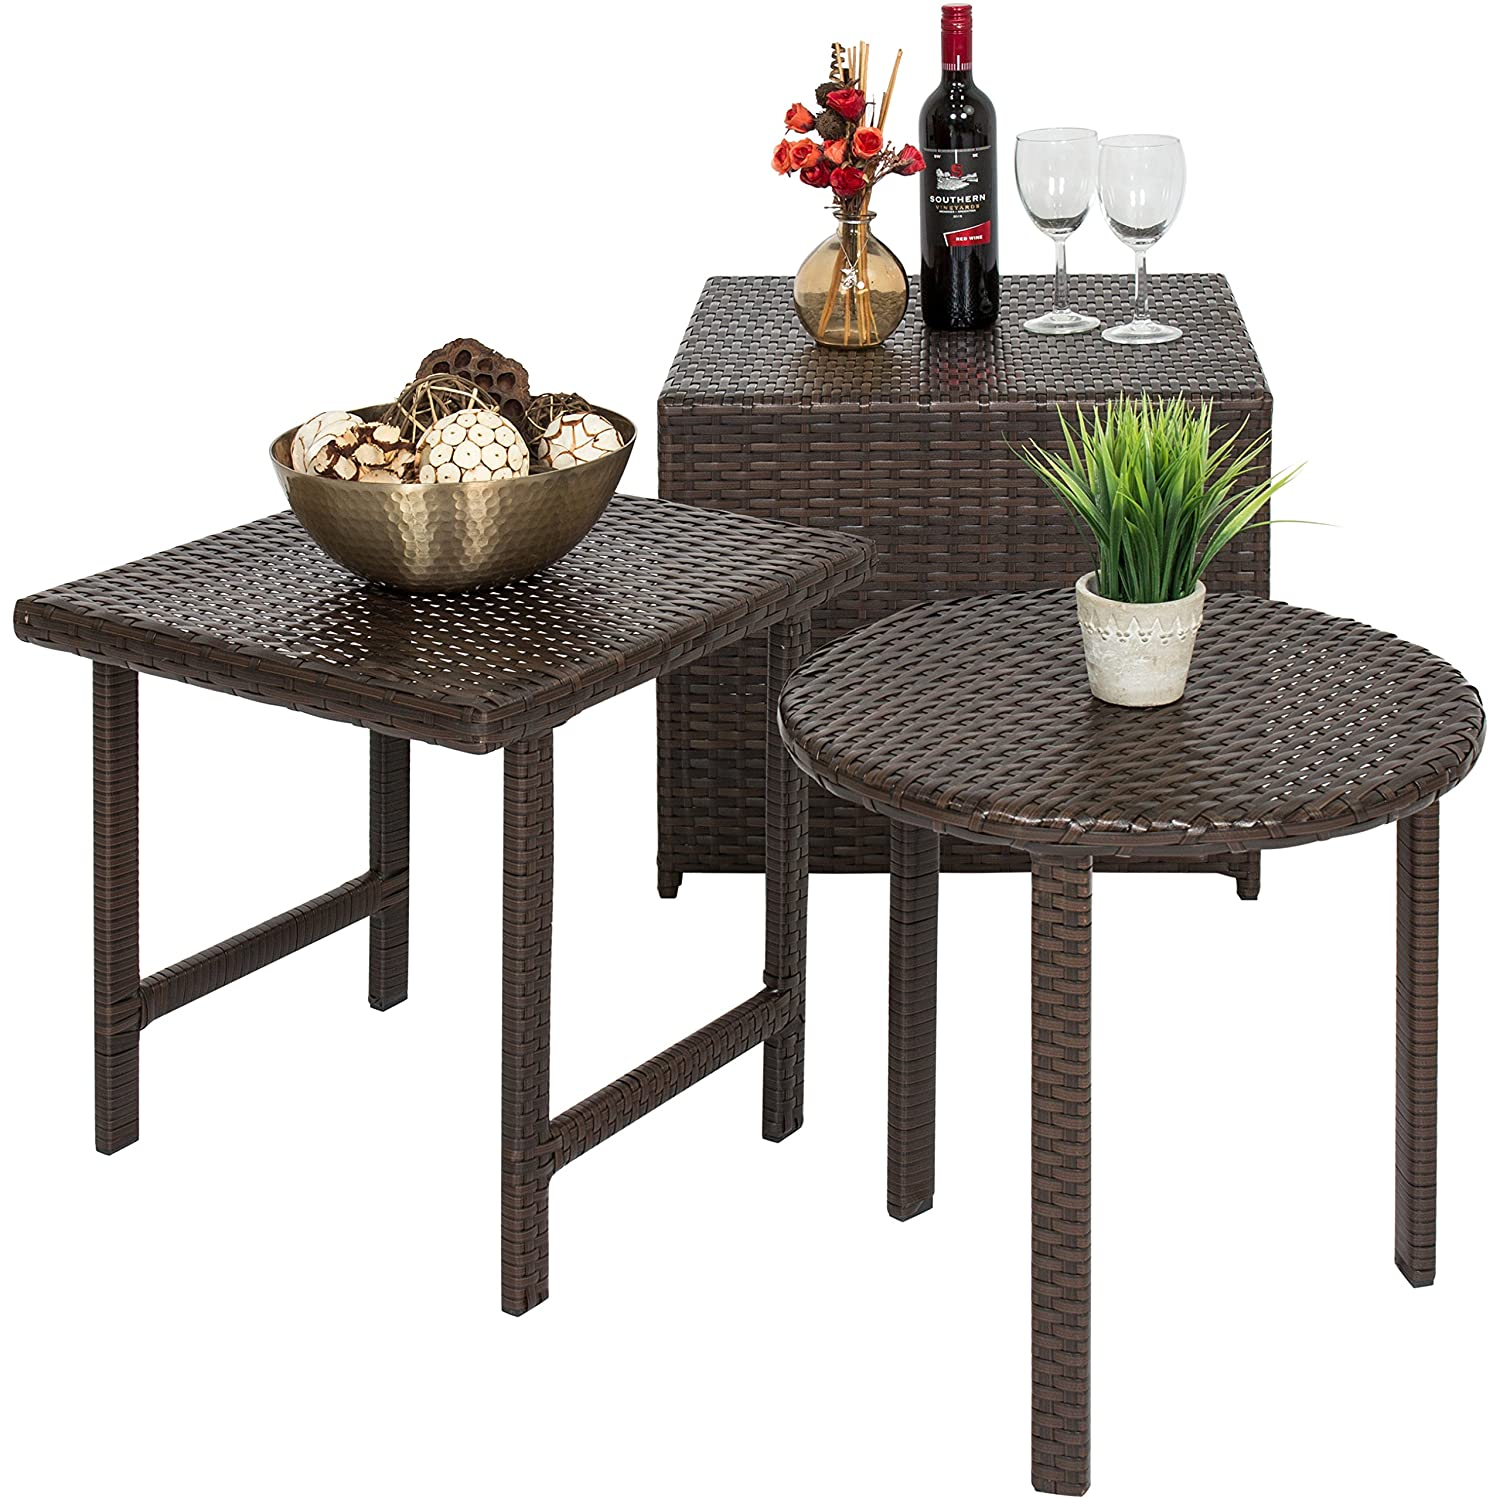 Amazon com best choice products set of 3 outdoor patio furniture wicker tables w square round and ottoman table brown garden outdoor